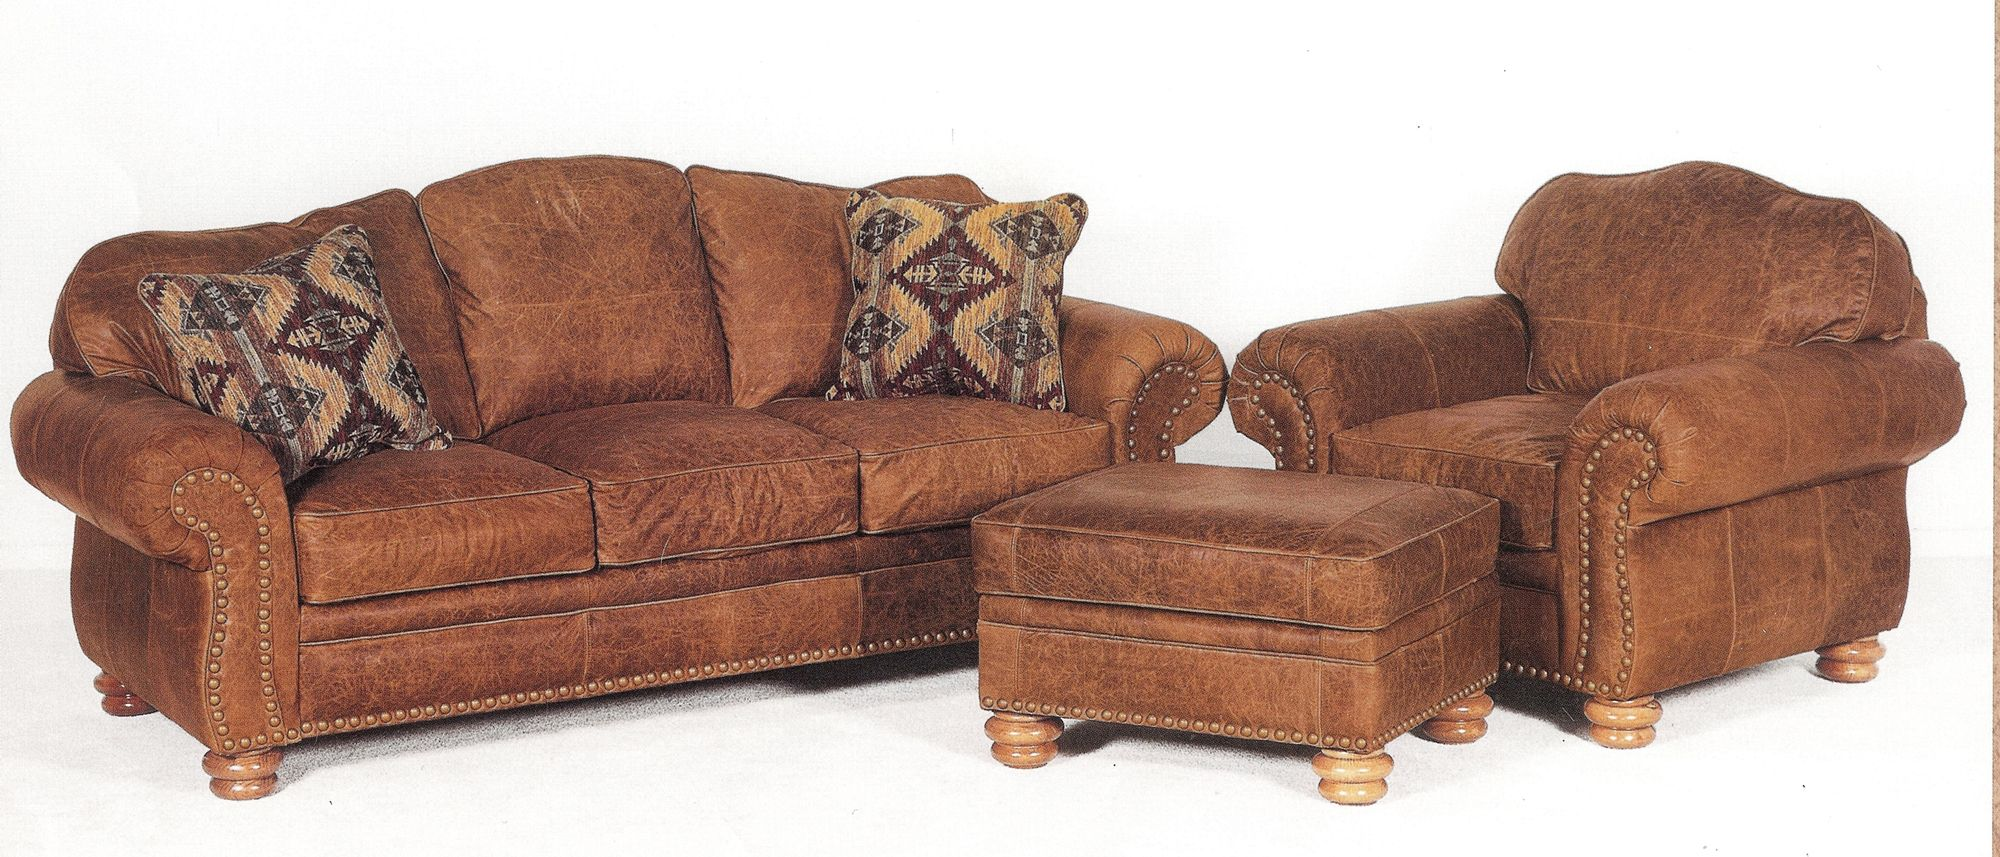 Acid Washed Distressed Leather Sofa And Chair And Ottoman With Rustic  Nailhead Trim And Double Bun Feet